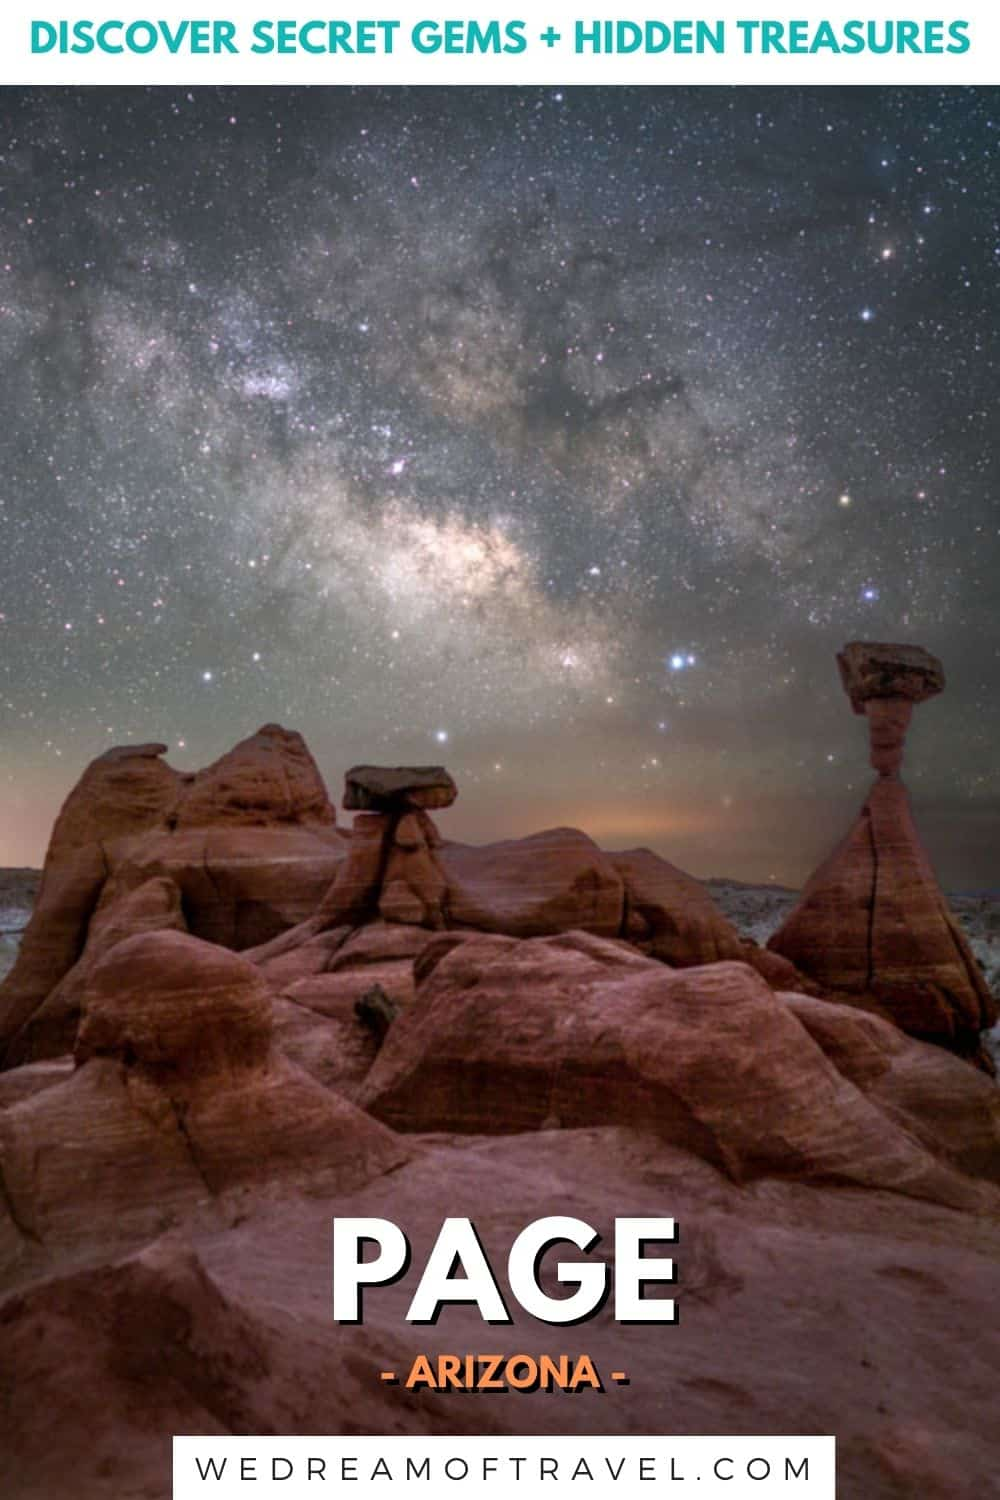 There are more things to do in Page, AZ than any other region in the entire state of Arizona. Though the most popular attractions of Horseshoe Bend and Antelope Slot Canyons draw most of the crowds, there is a myriad of other incredible landscapes and natural works of art that are worth exploring. Discover all the most iconic sights and secret local gems in this ultimate guide to things to do in Page, AZ.